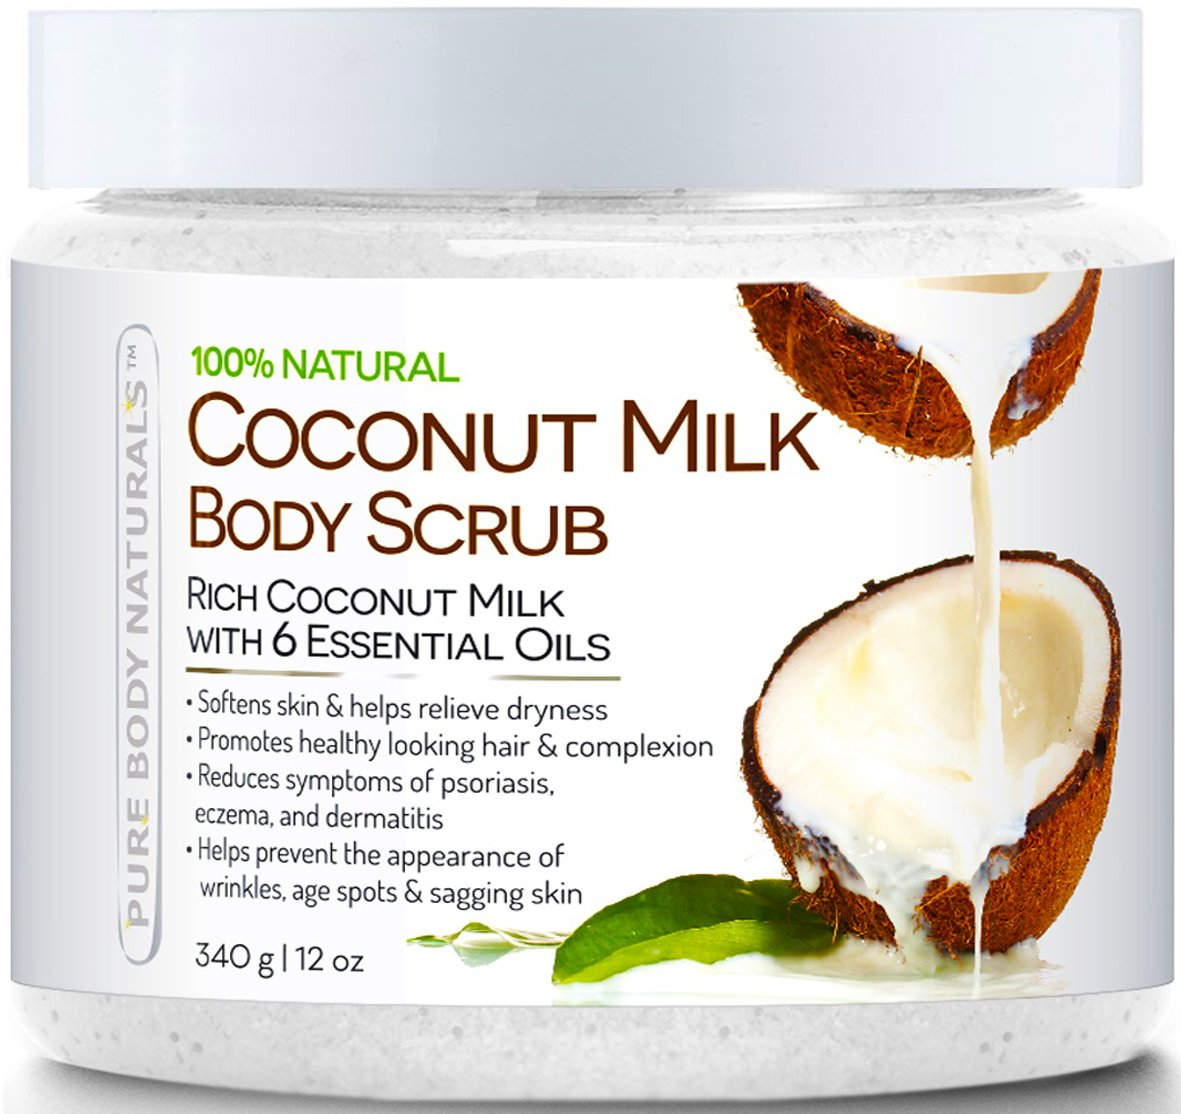 Coconut Milk Body Scrub 100% Natural 12 oz. Powerful Body Scrub Exfoliator Helps Prevent Appearance of Wrinkles with Dead Sea Salt Scrub, Almond Oil, Vitamin E. Daily Moisturizer For All Skin Types